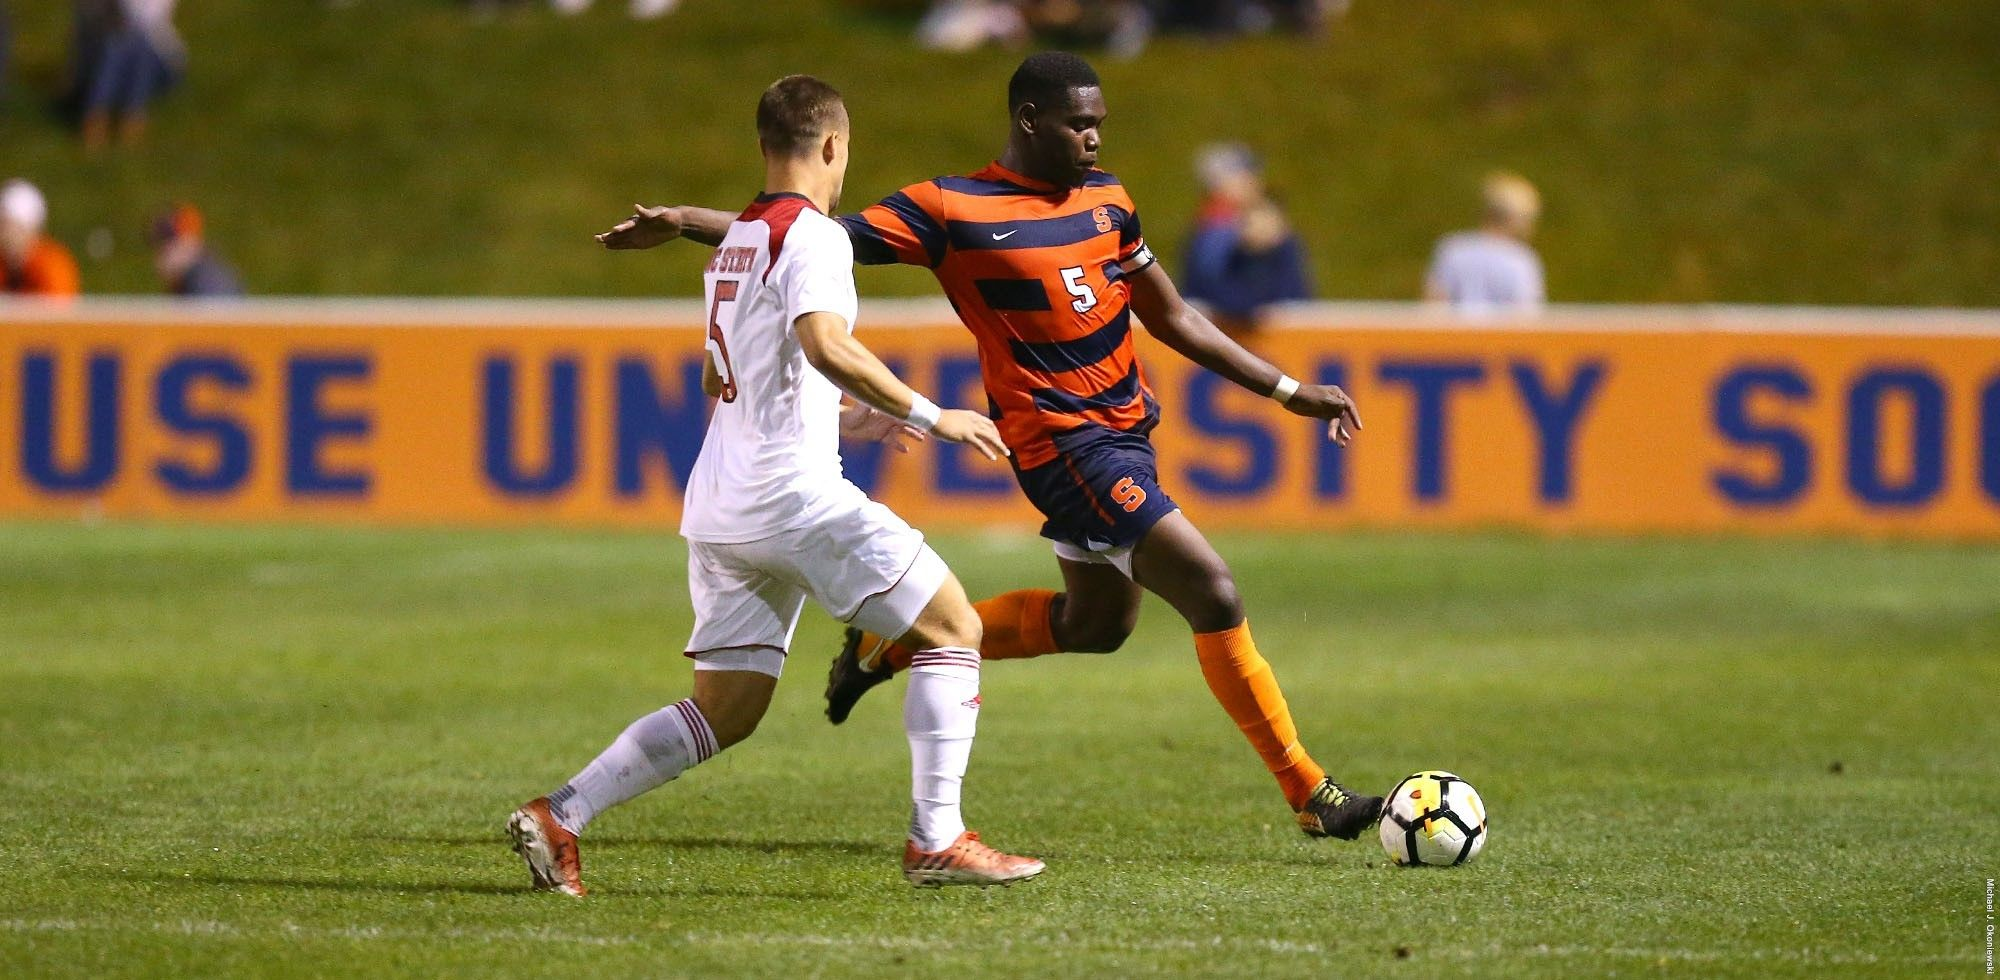 syracuse university soccer stars and their professional doppelgängers